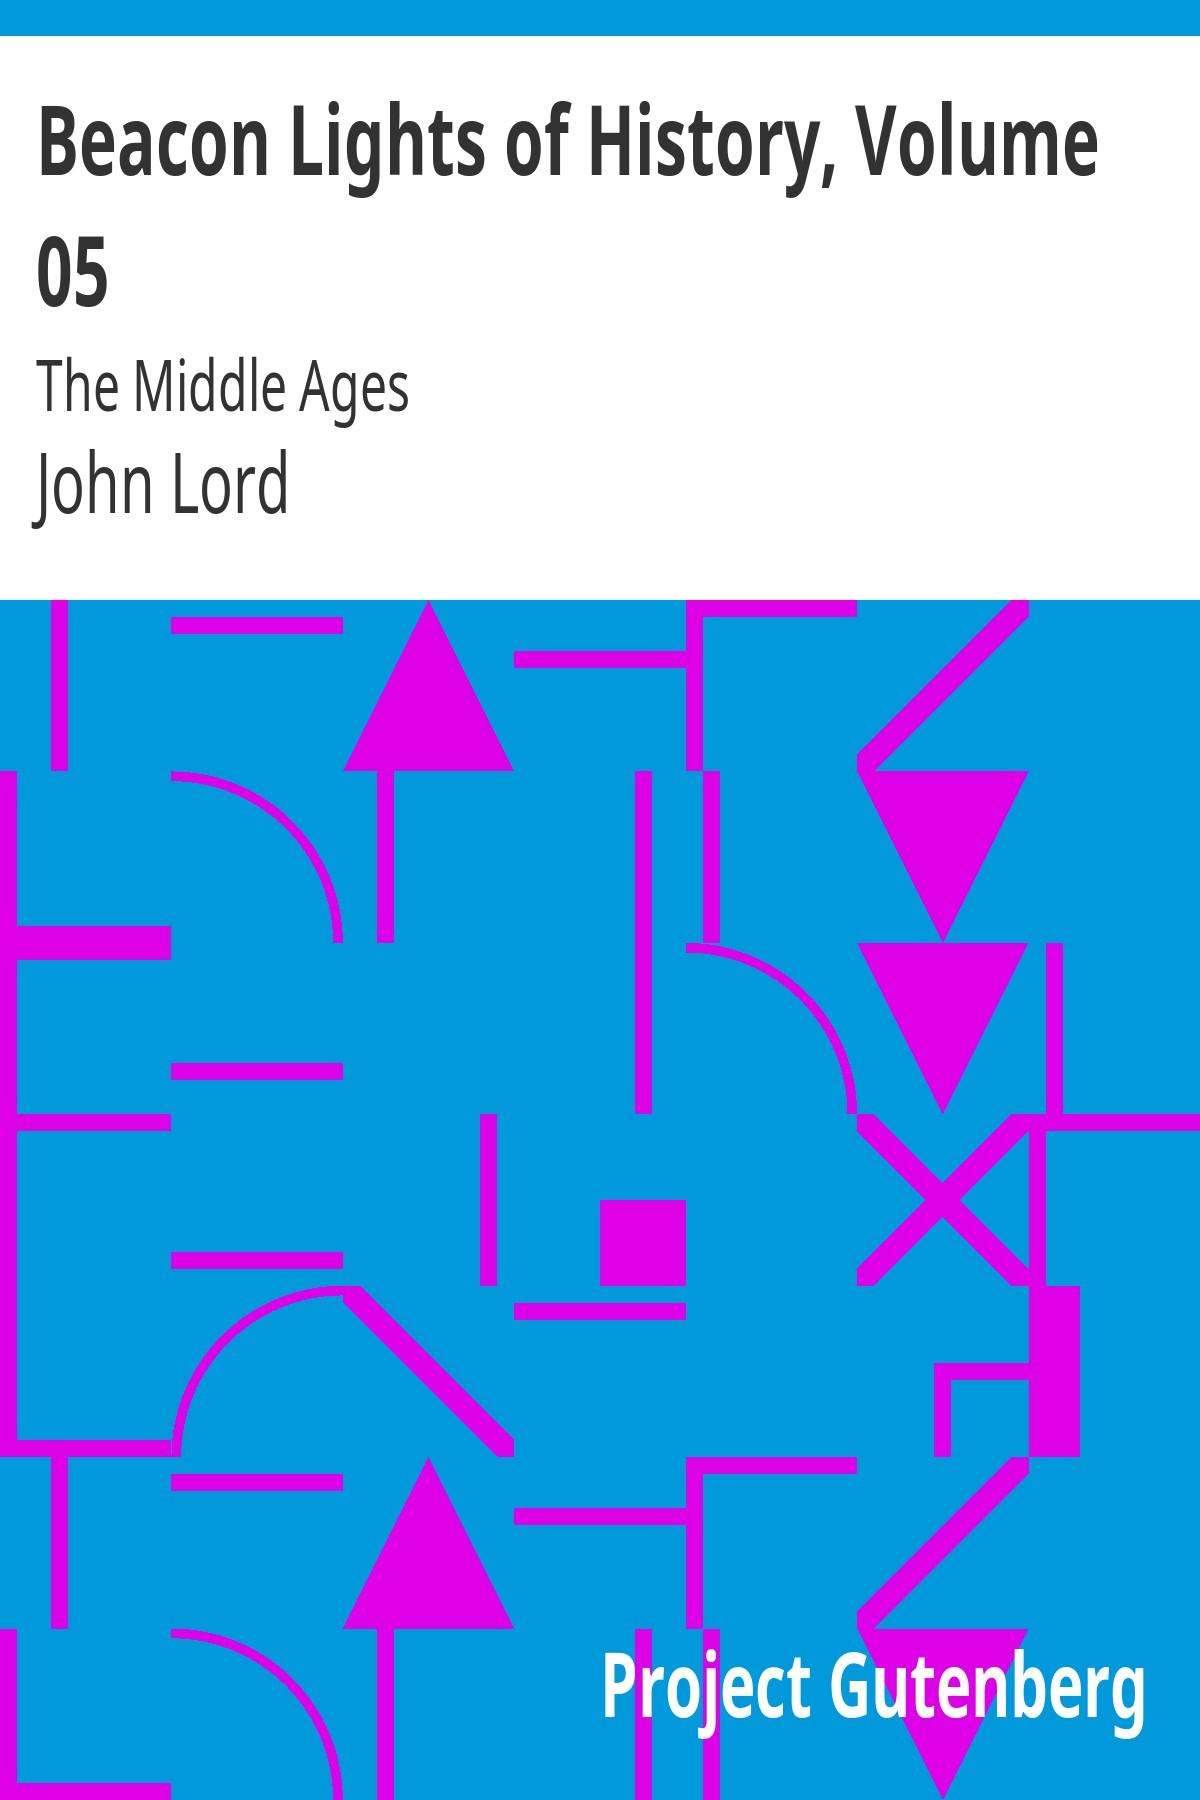 John Lord Beacon Lights of History, Volume 05: The Middle Ages